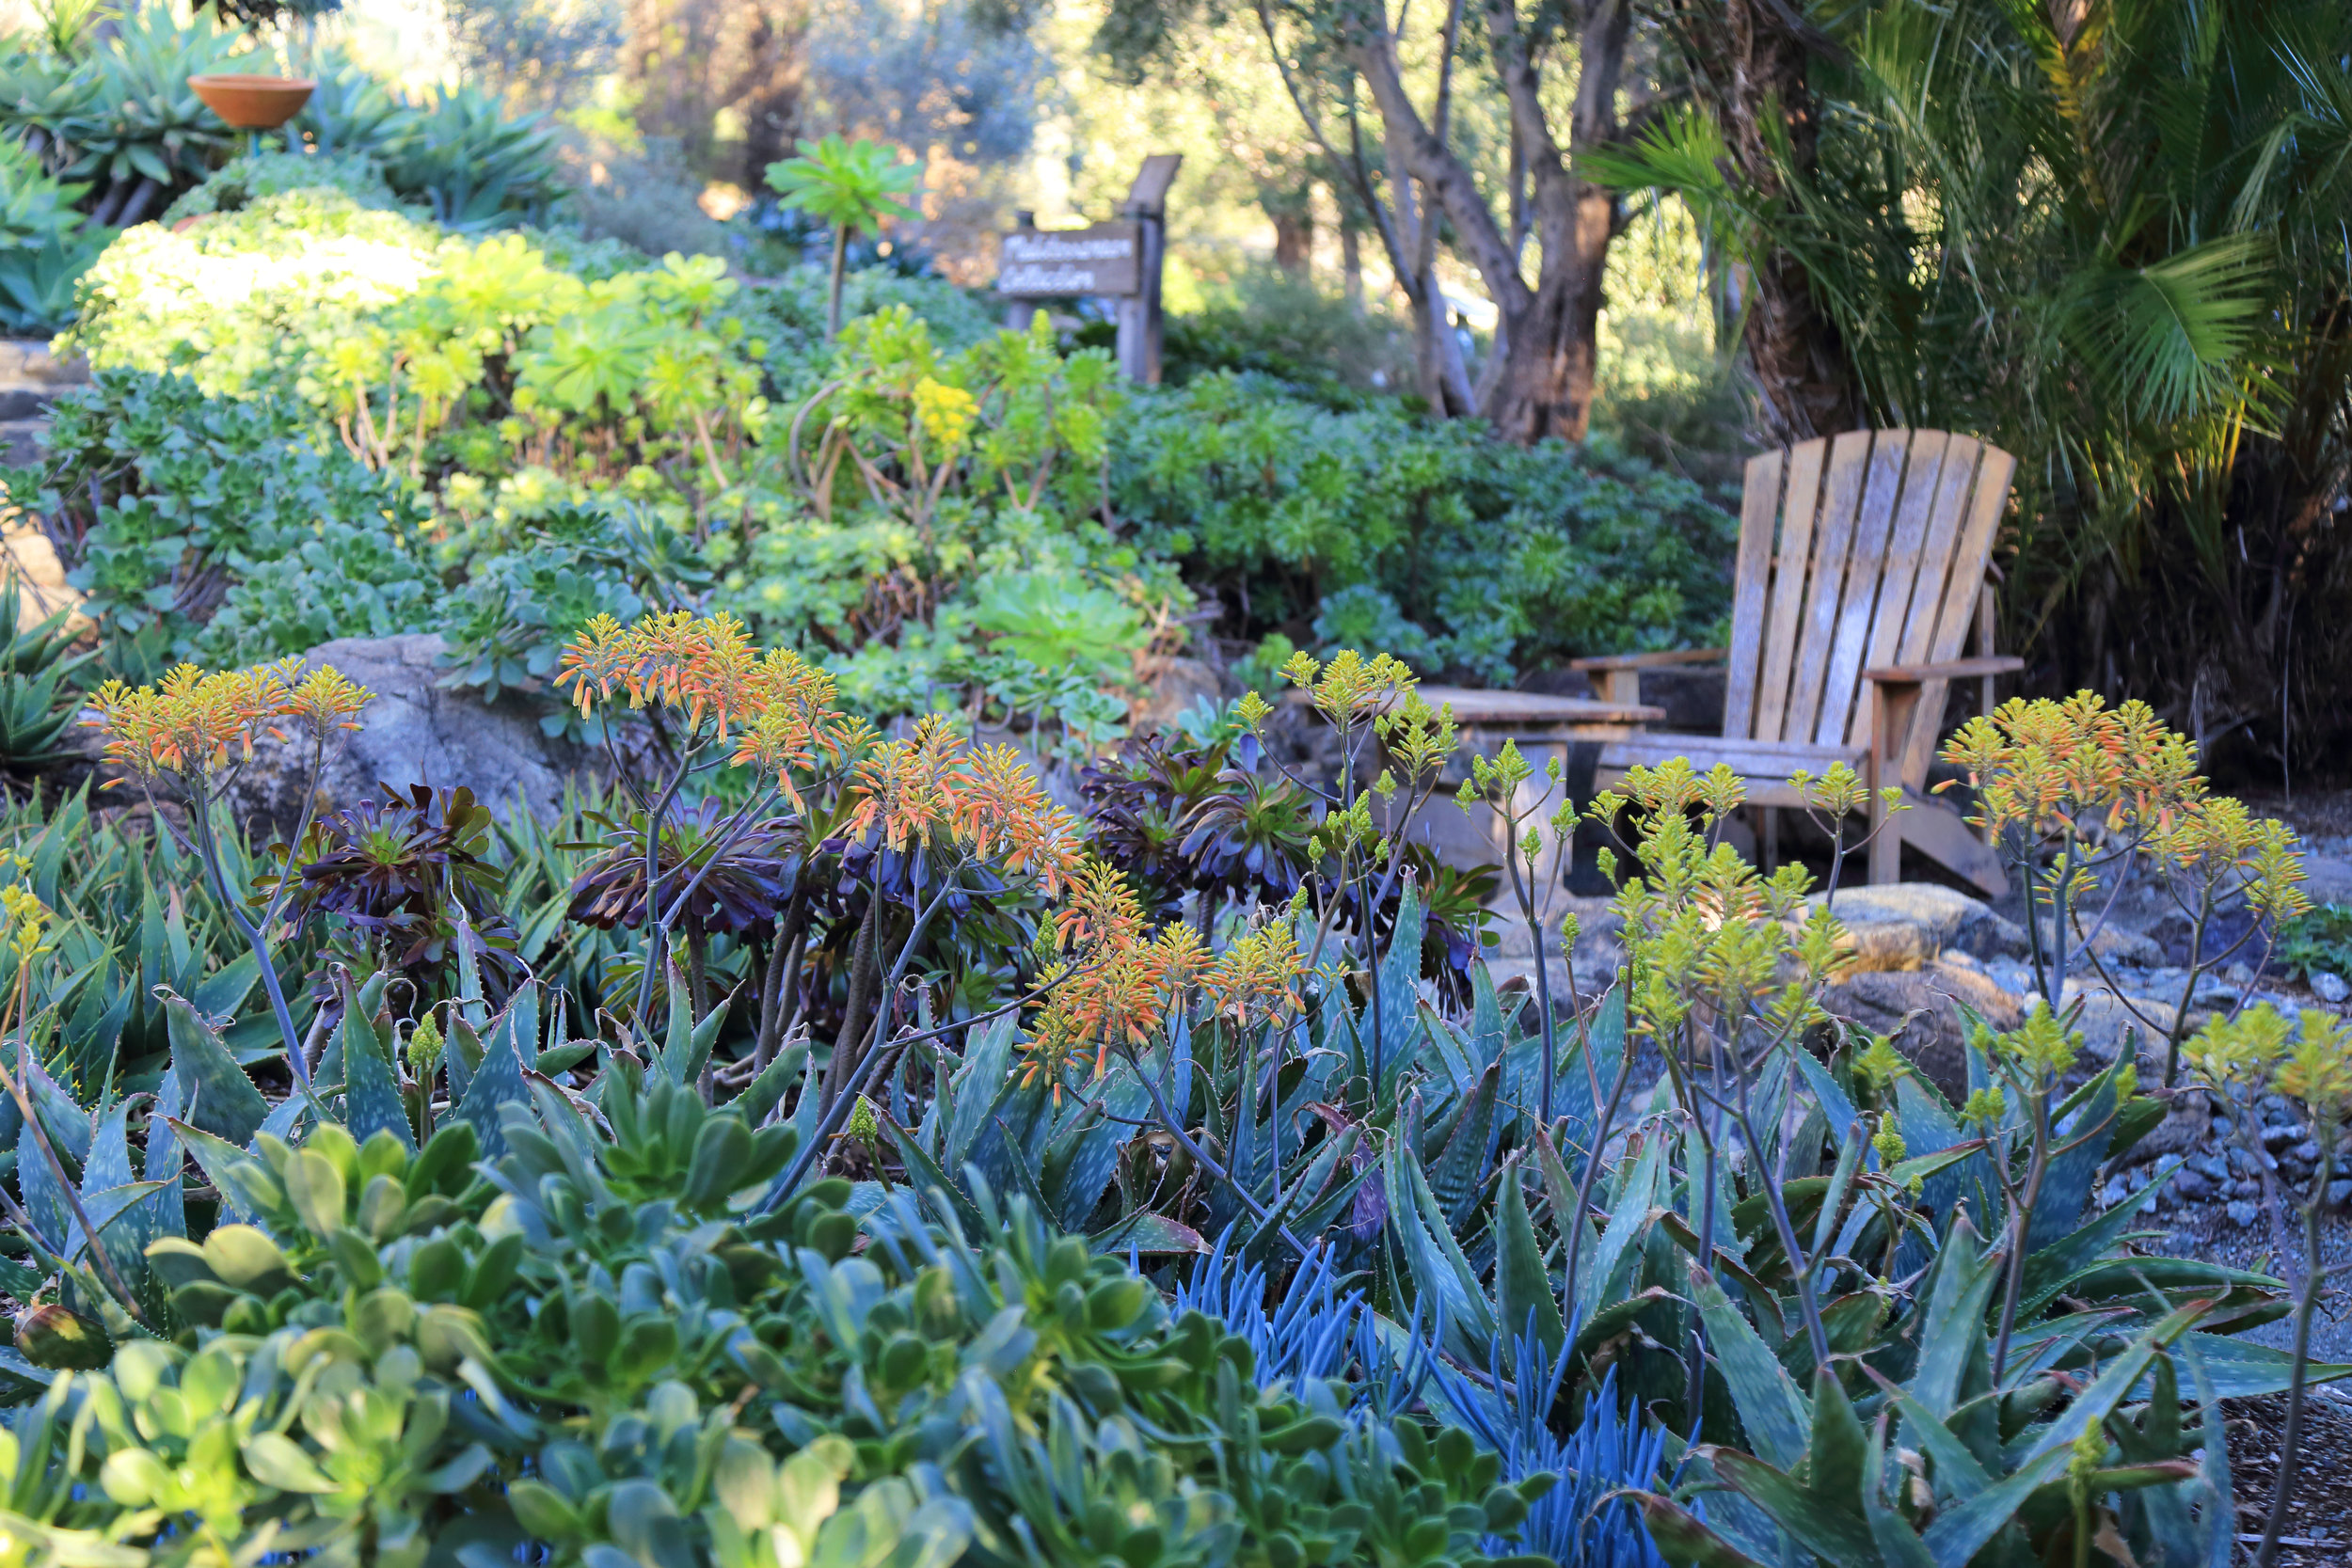 A succulent-surrounded seating area